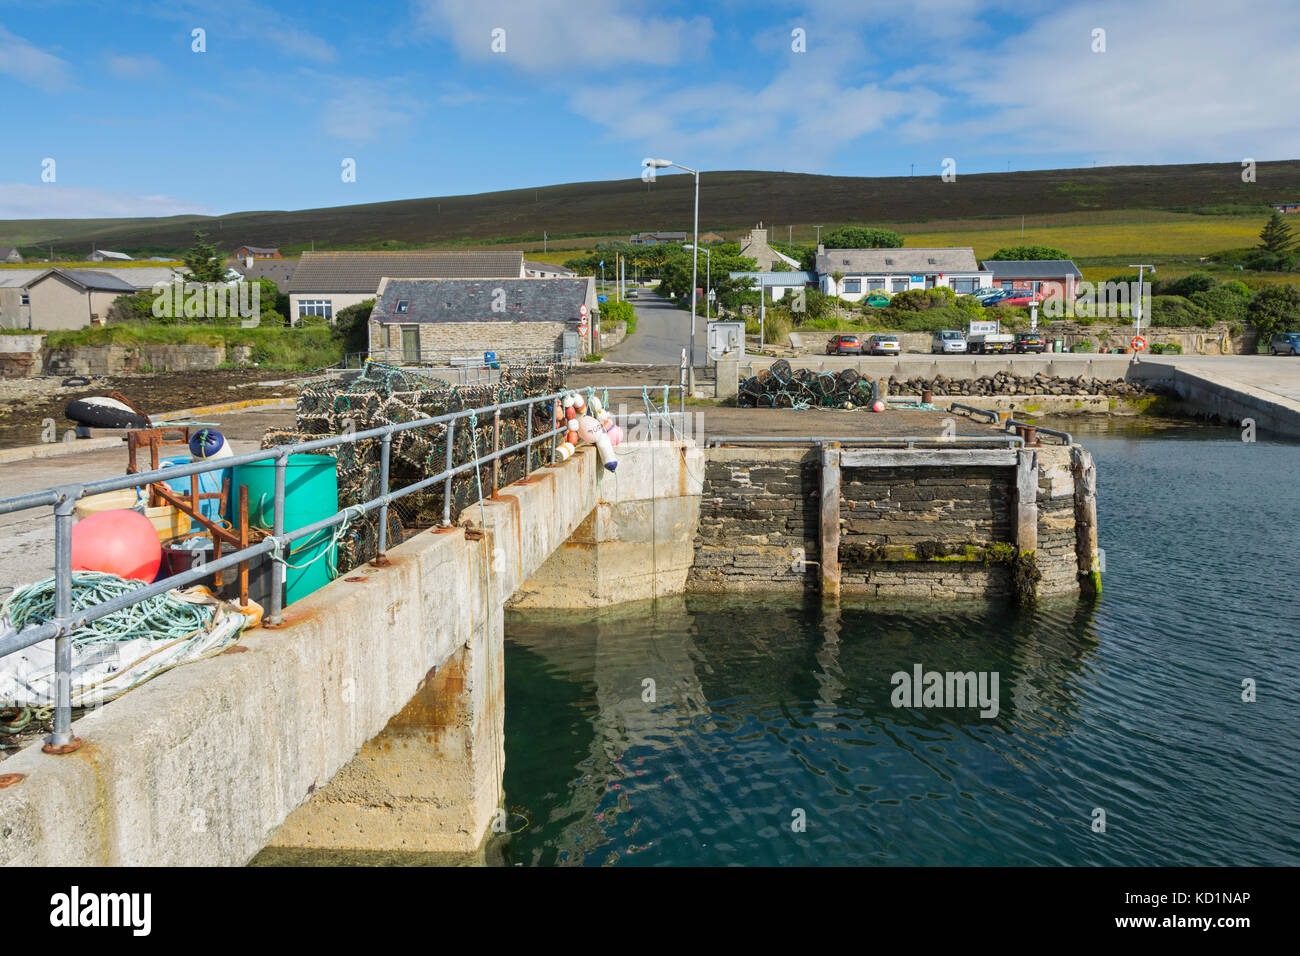 The jetty on the island of Rousay, Orkney Islands, Scotland, UK. - Stock Image